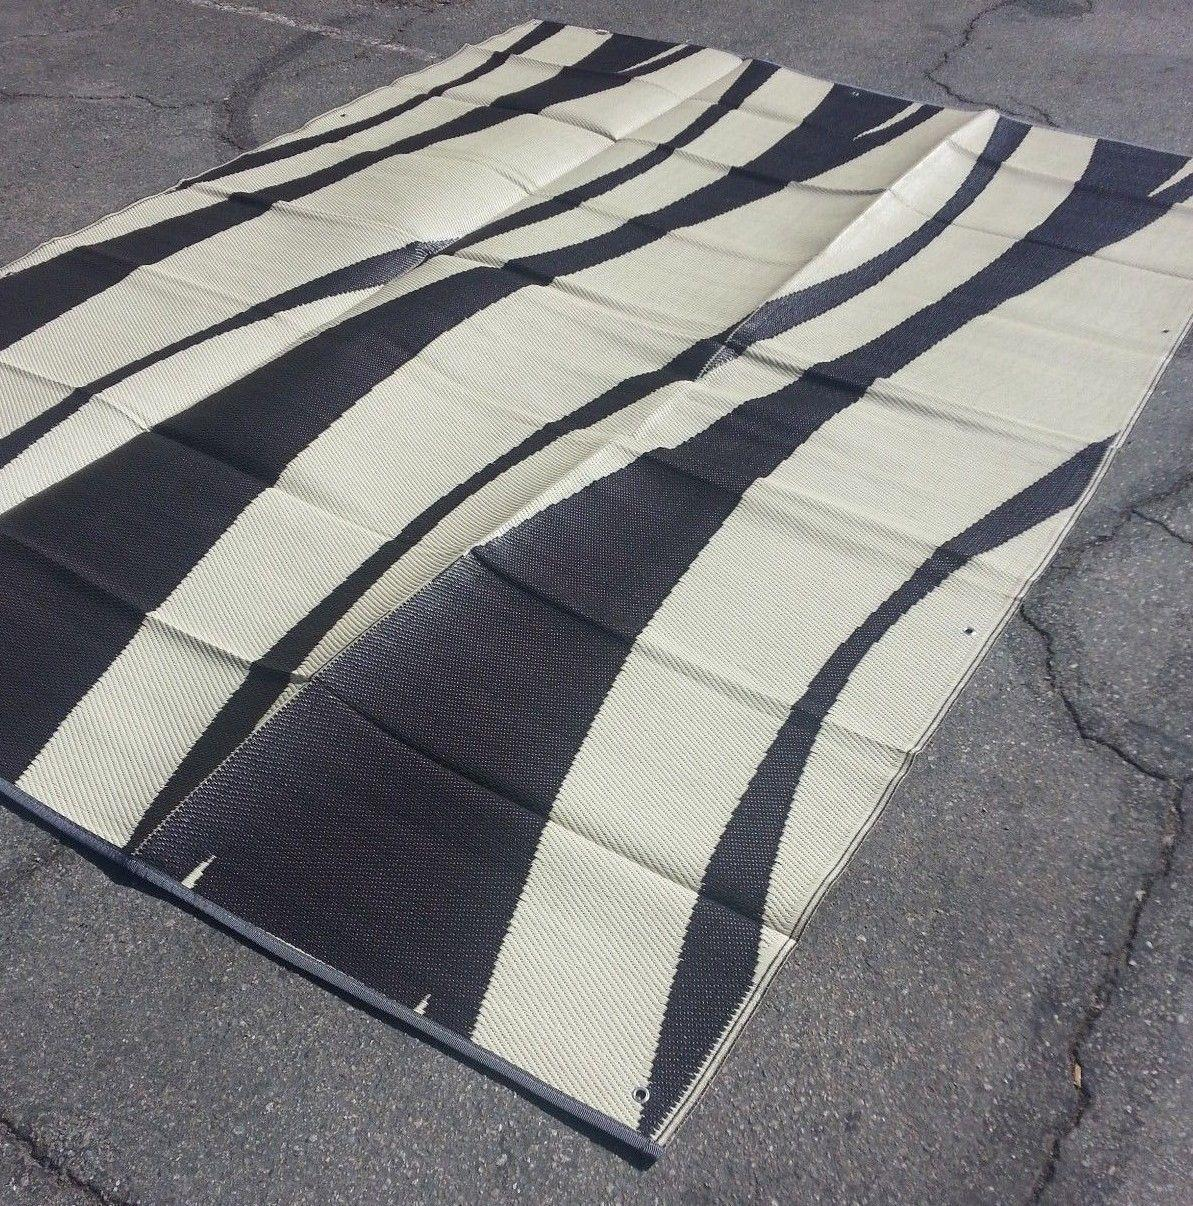 white rv wh patio blackwhite reversible outdoor camco checkered p awning mat black